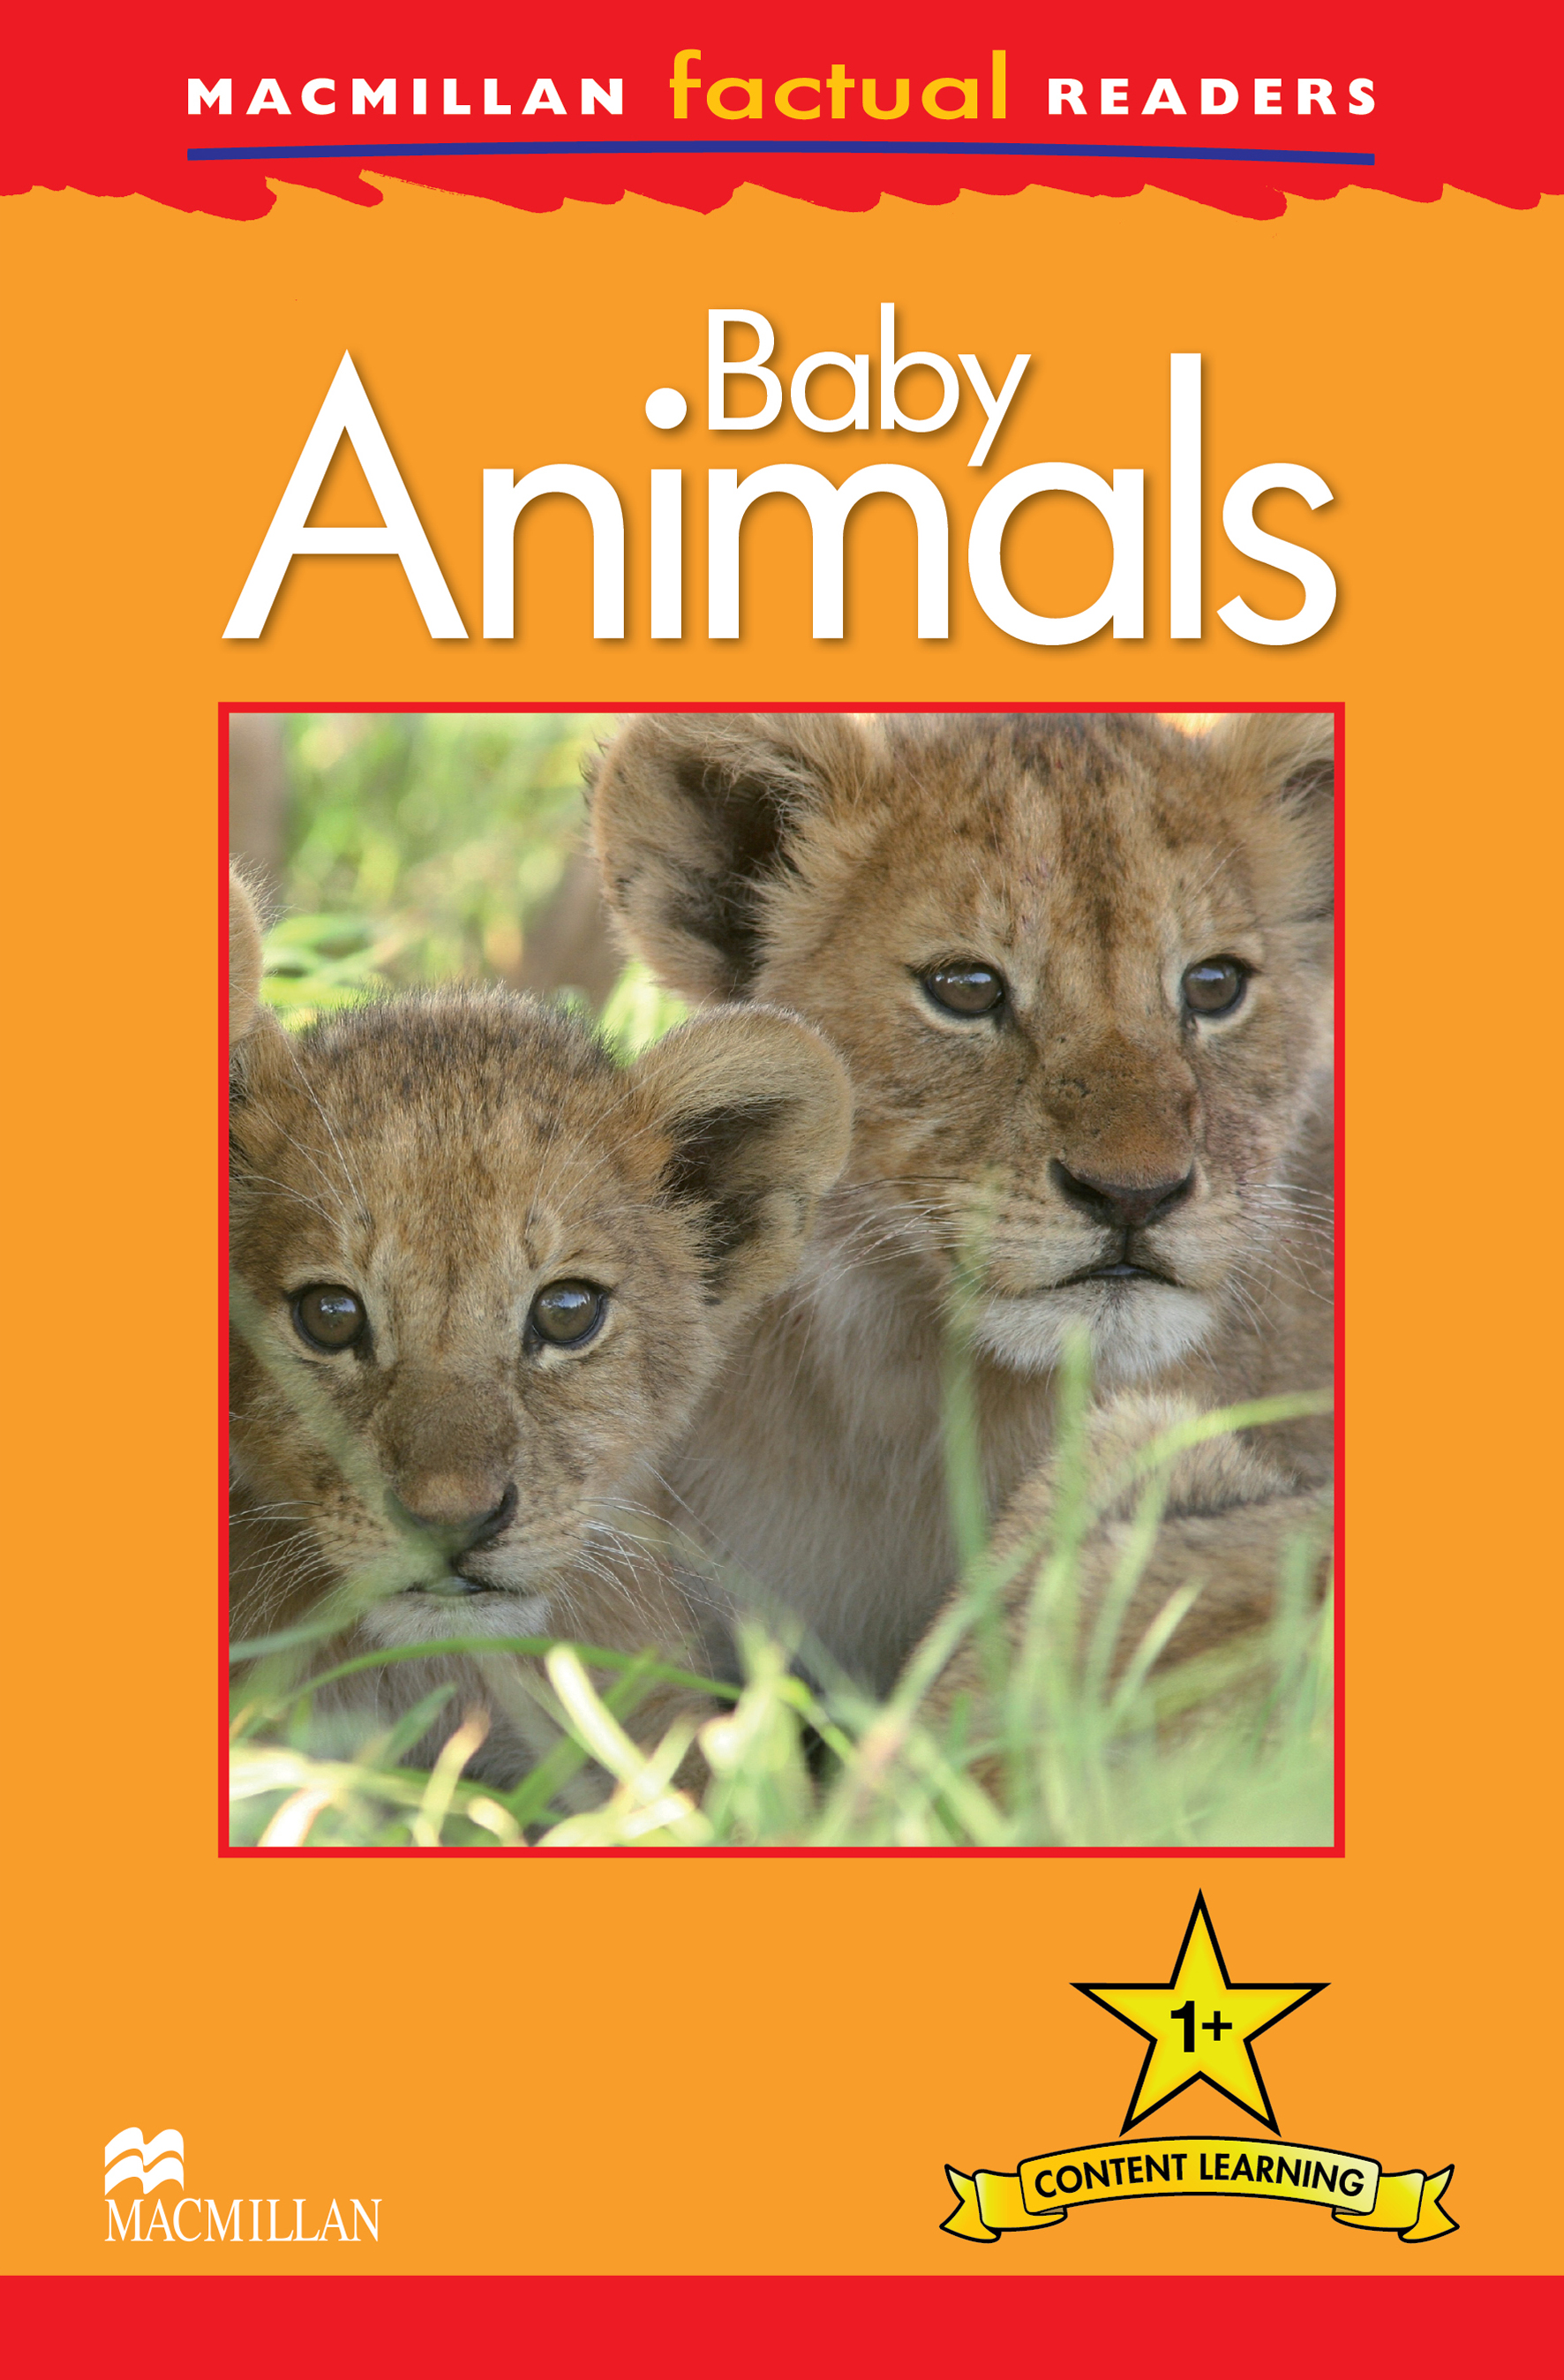 Macmillan Factual Readers: Baby Animals